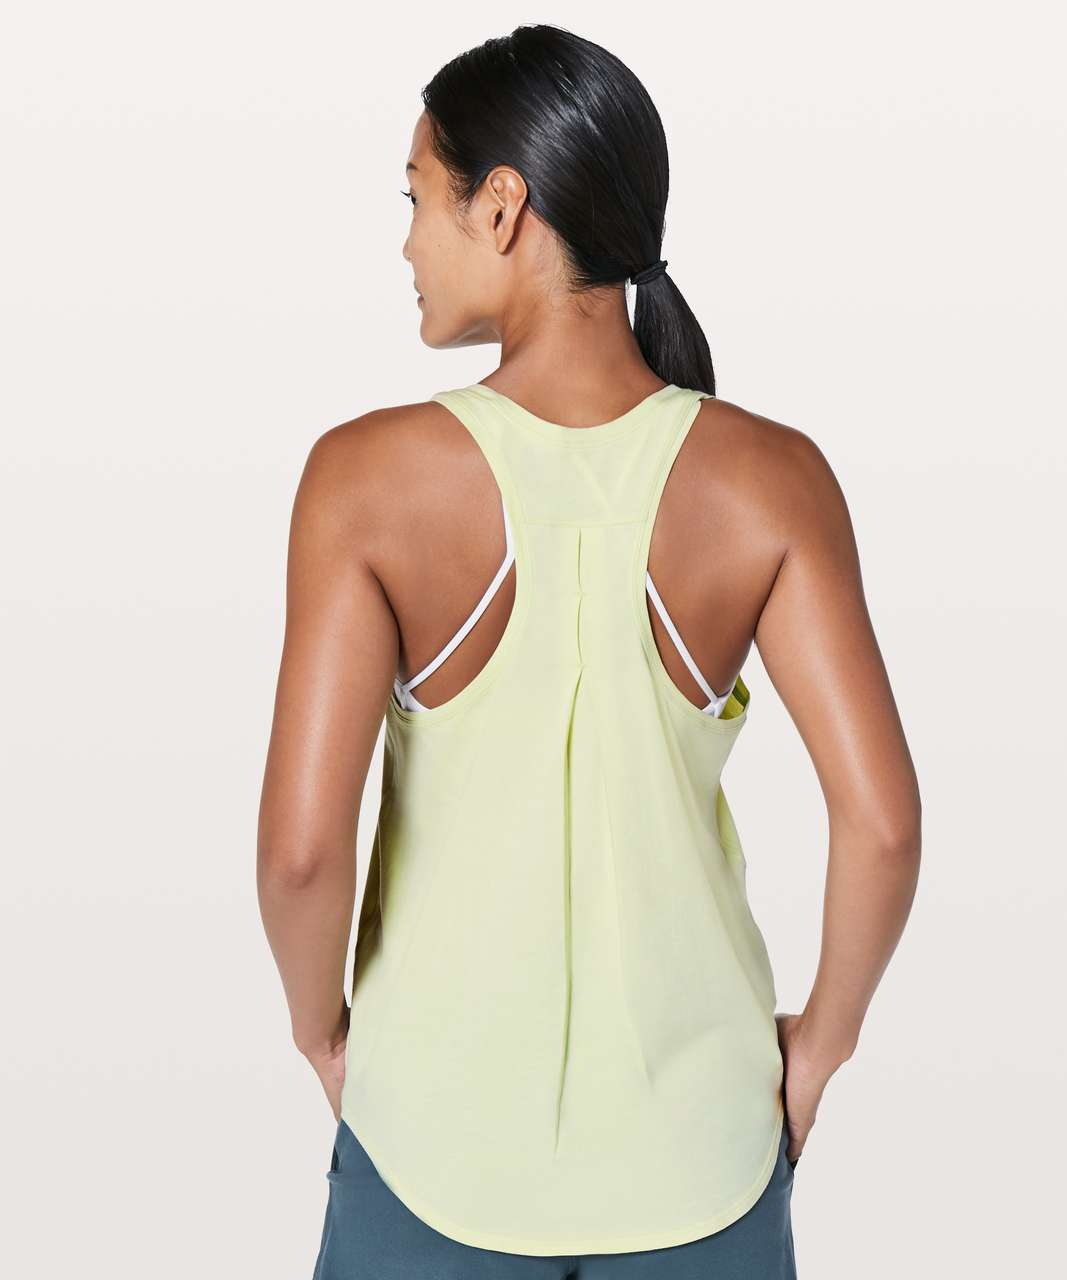 Lululemon Love Tank *Pleated - Dewy